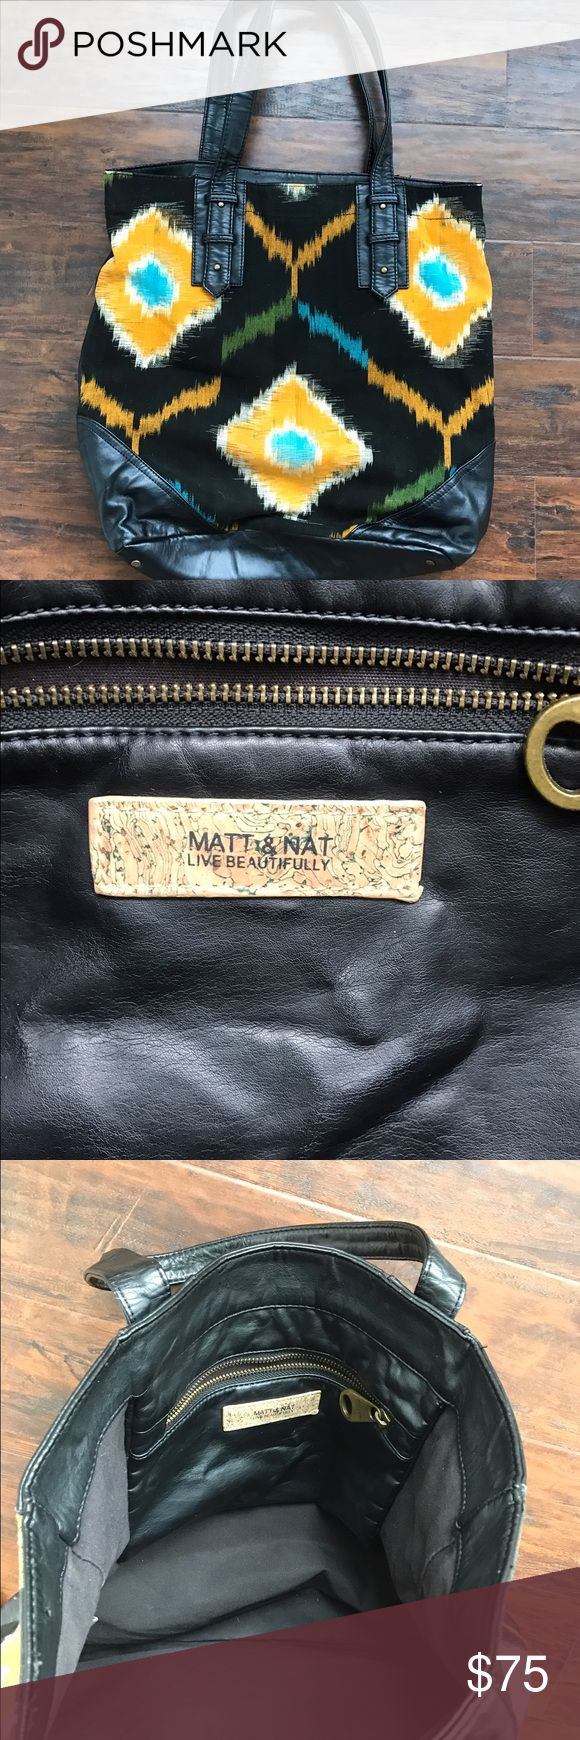 Matt and Nat Zocalo Tote Used. This wrinkled faux-leather tote features a print canvas front panel. Lined interior features zip pocket. Lining is made of recycled plastic bottles. Matt and Nat Bags Totes